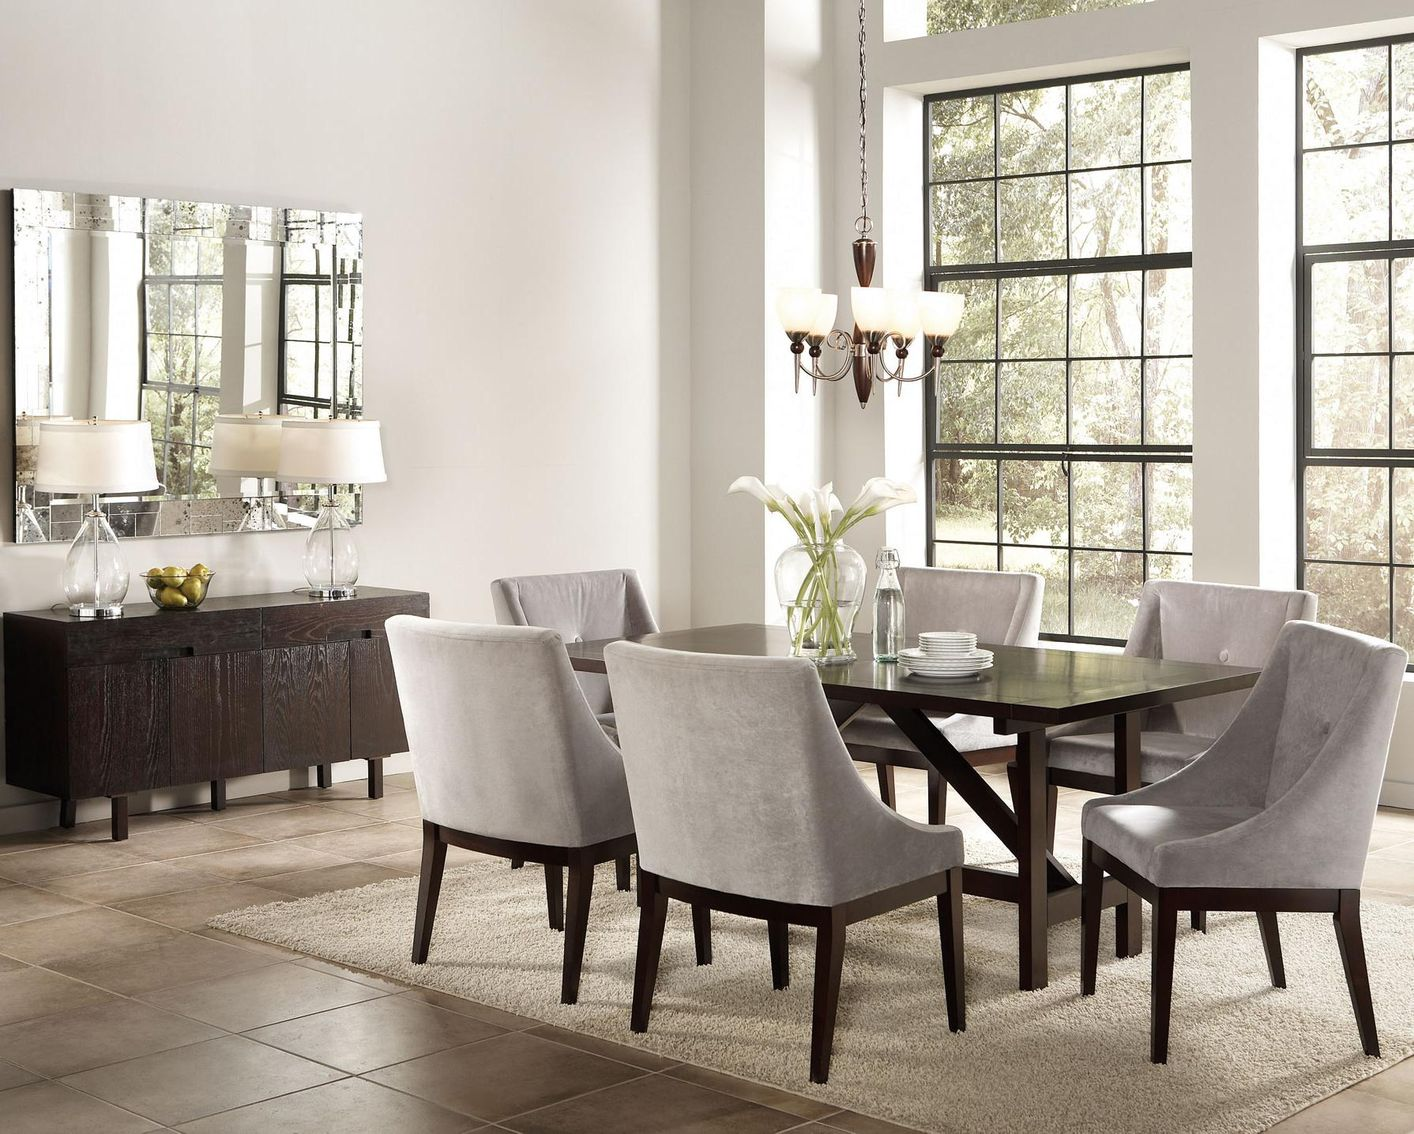 Grey fabric accent chair steal a sofa furniture outlet los angeles ca - Grey fabric dining room chairs designs ...